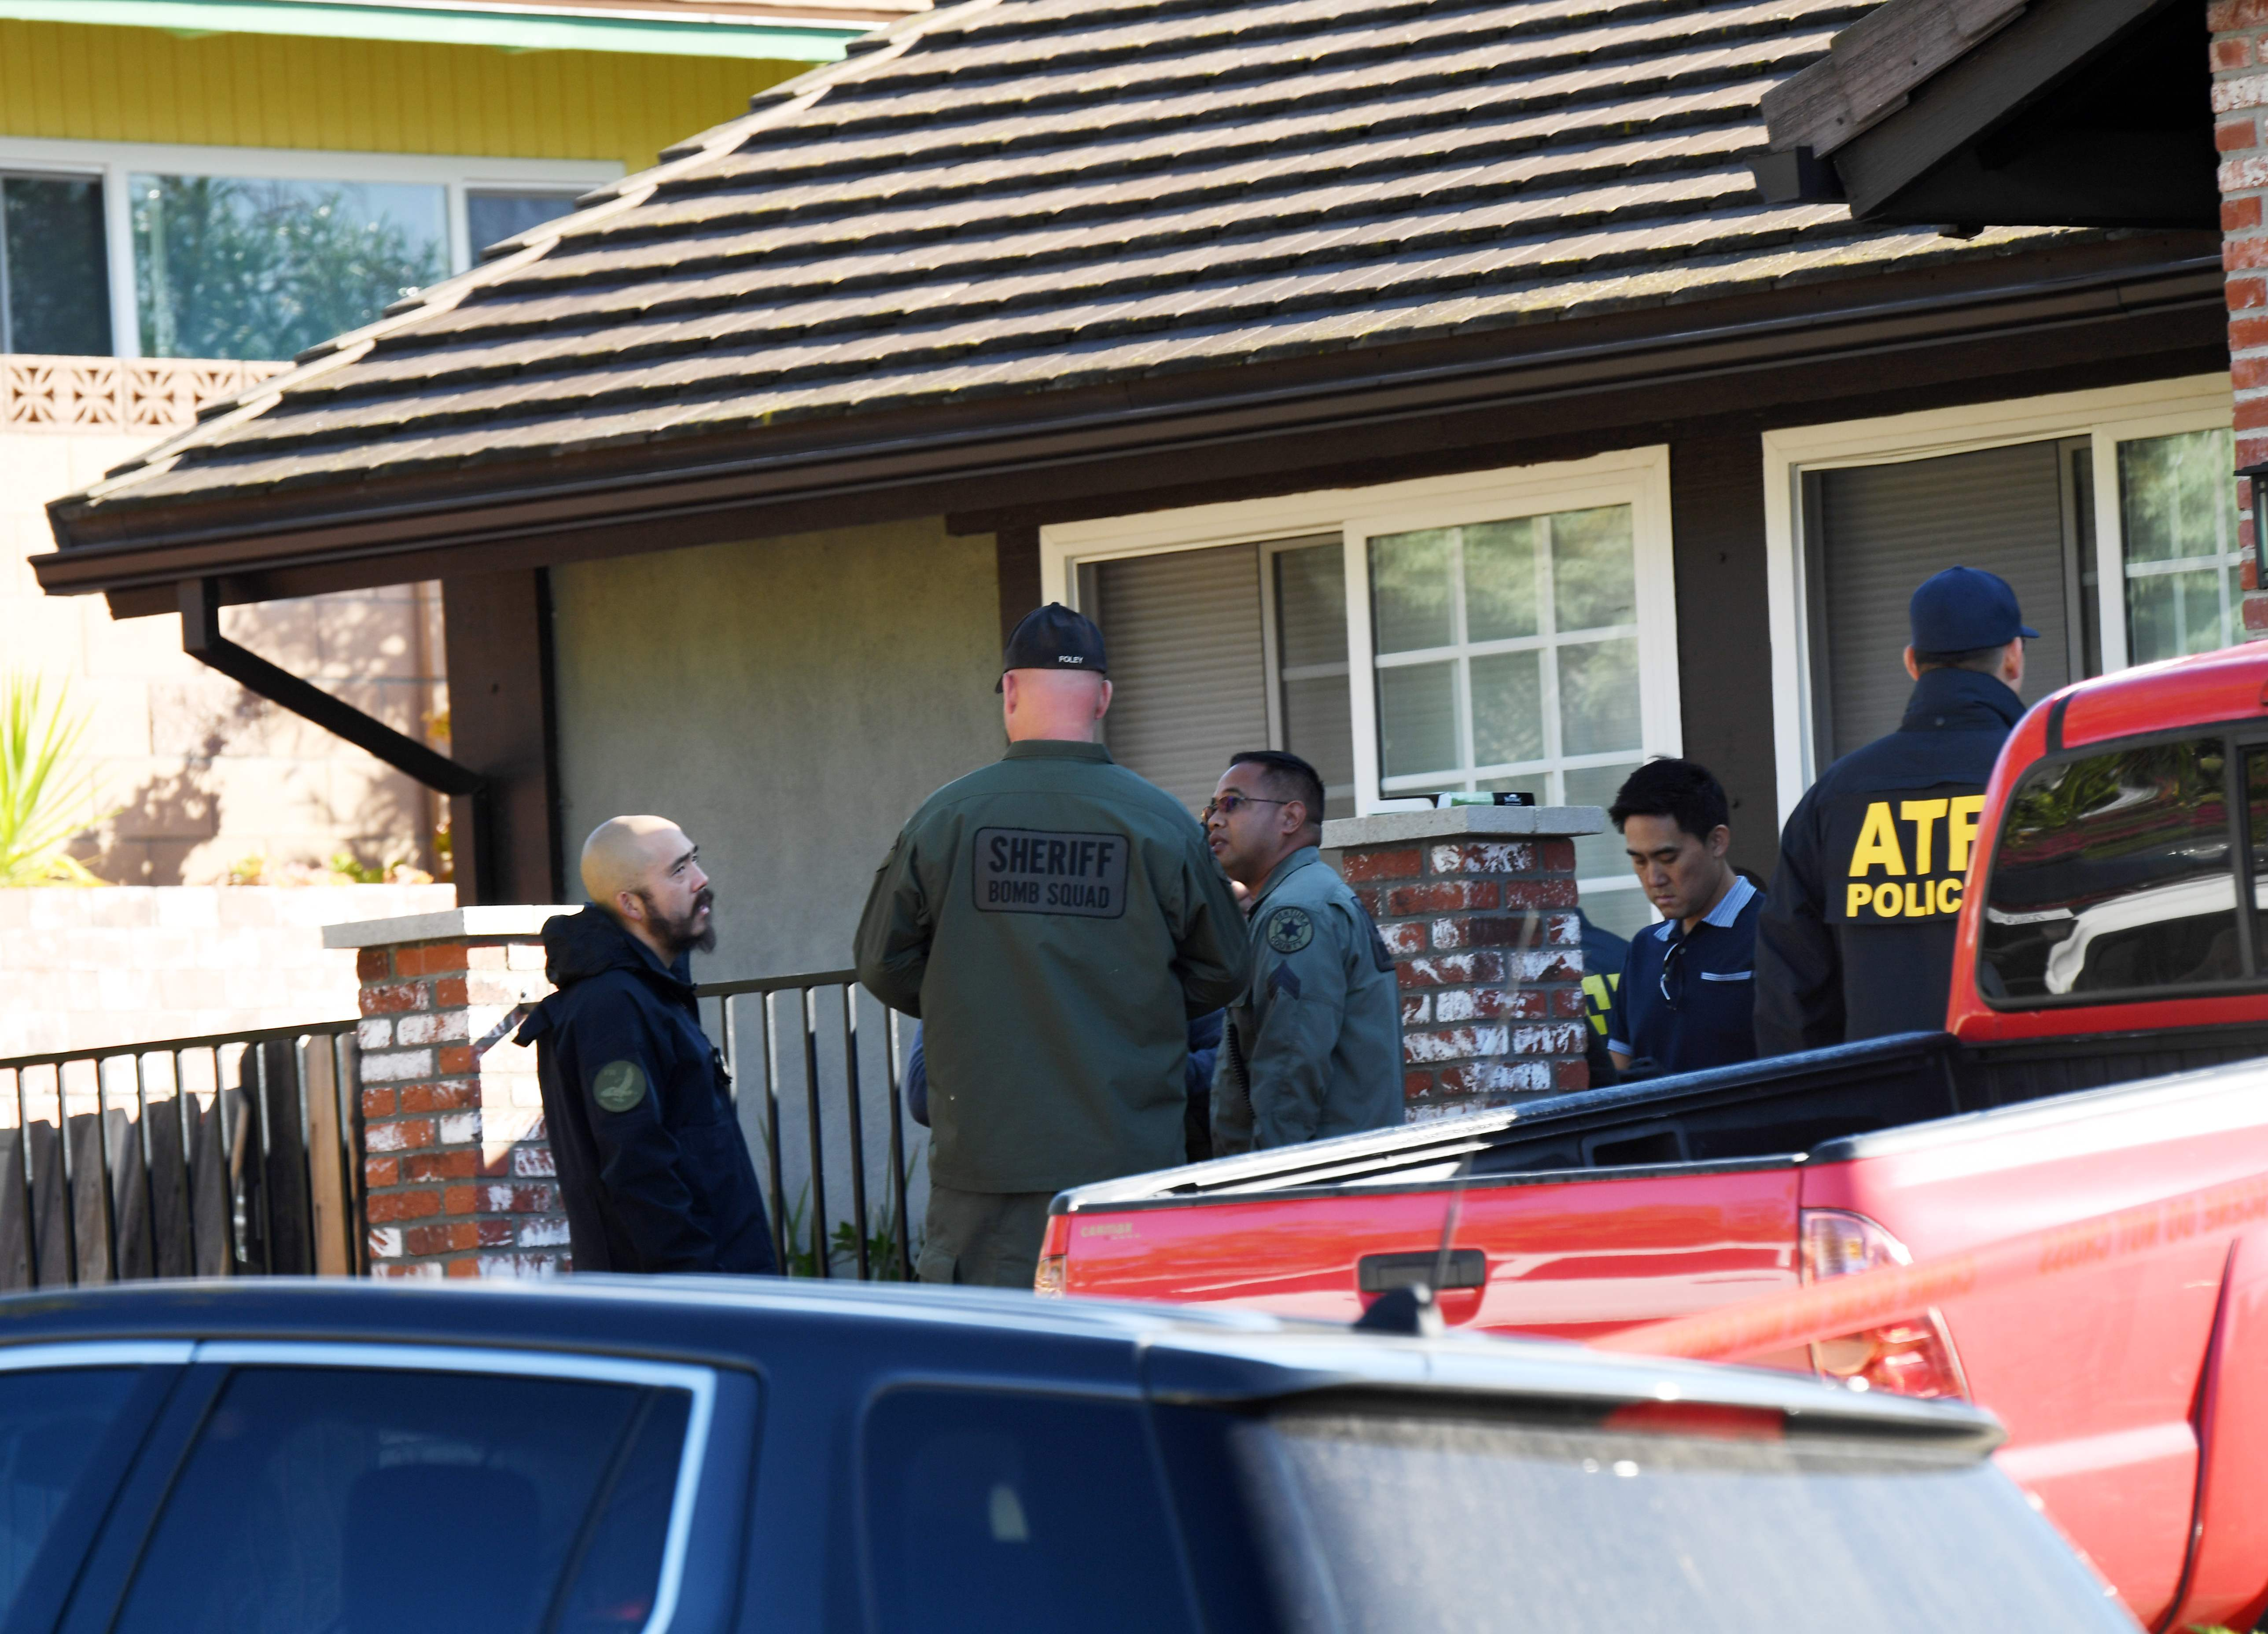 The home of Ian David Long is searched on Thursday in Thousand Oaks, California.